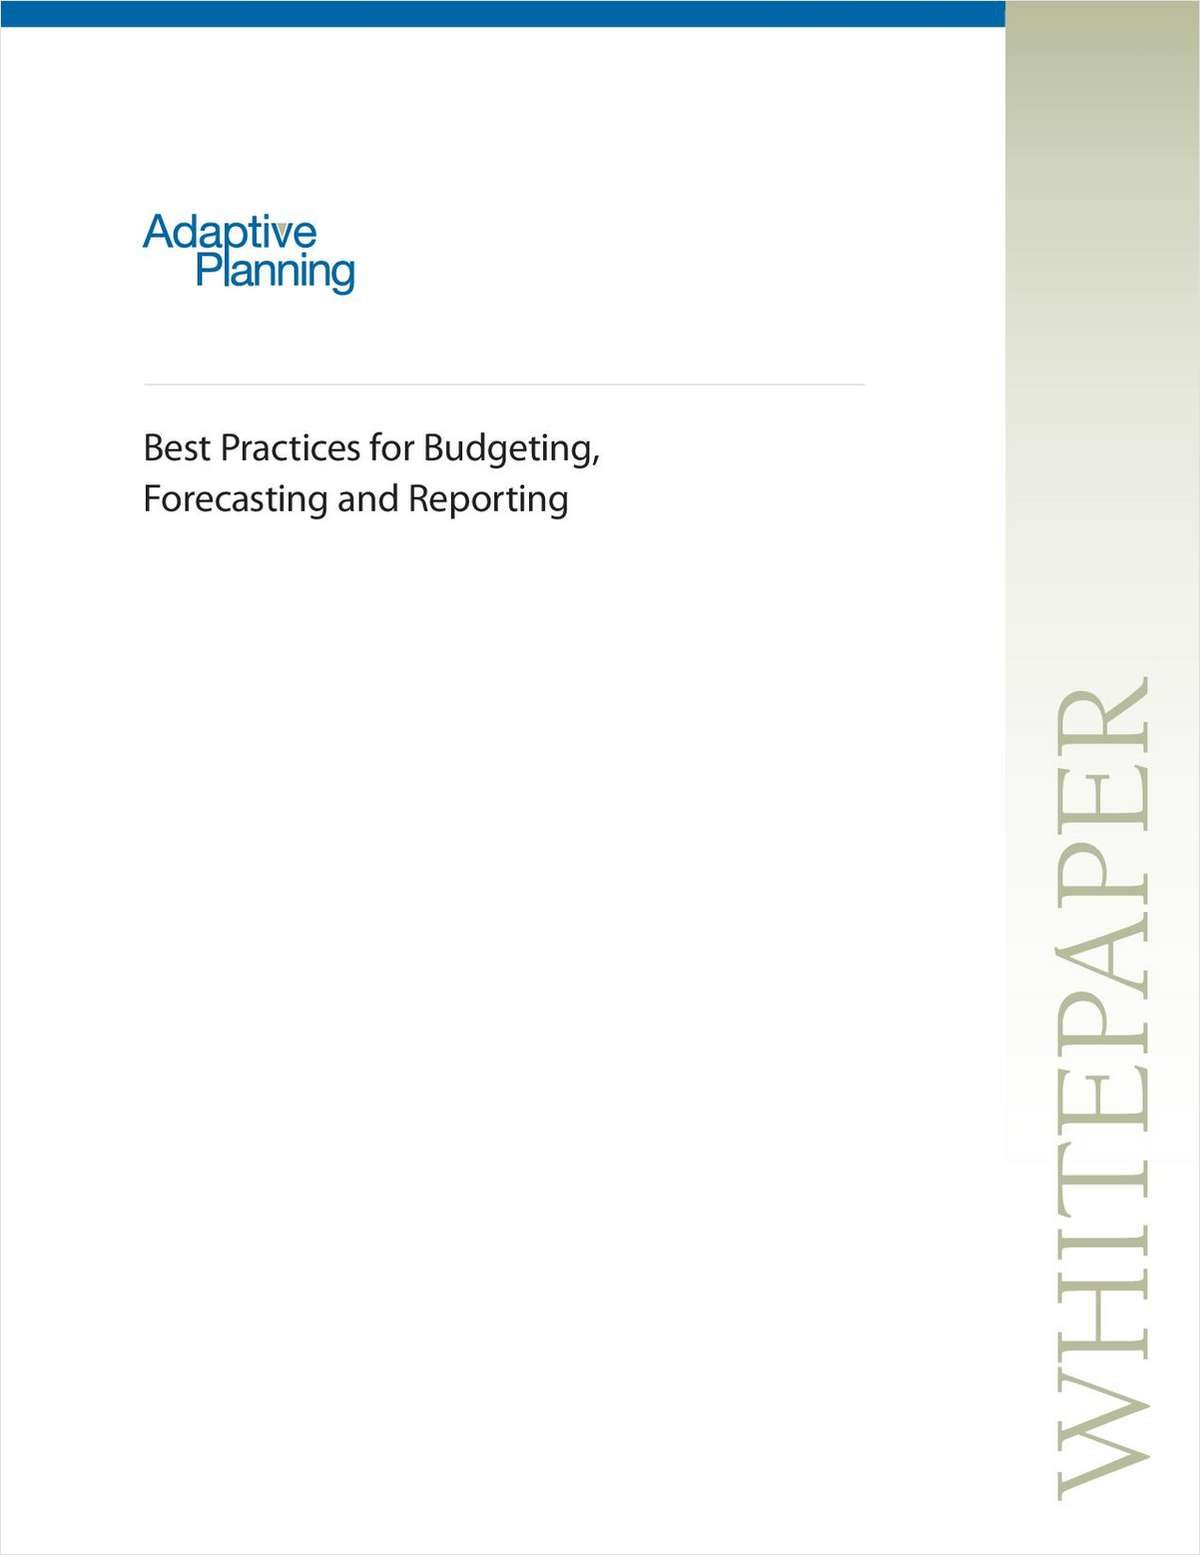 Best Practices Kit - Budgeting, Forecasting and Reporting